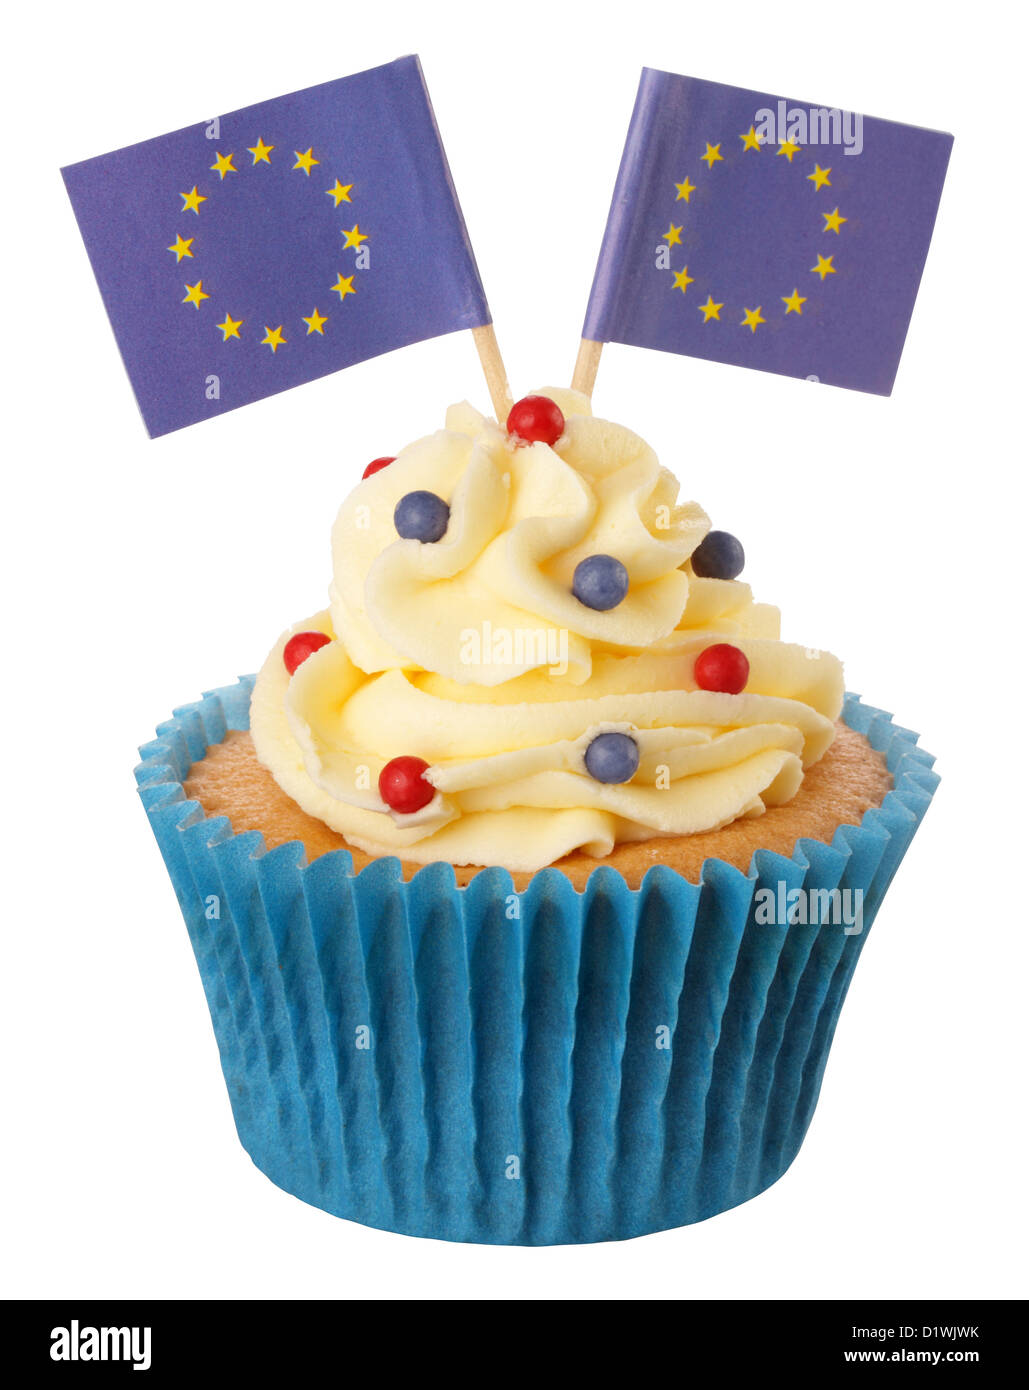 CUT OUT OF EUROPEAN UNION CUPCAKE - Stock Image